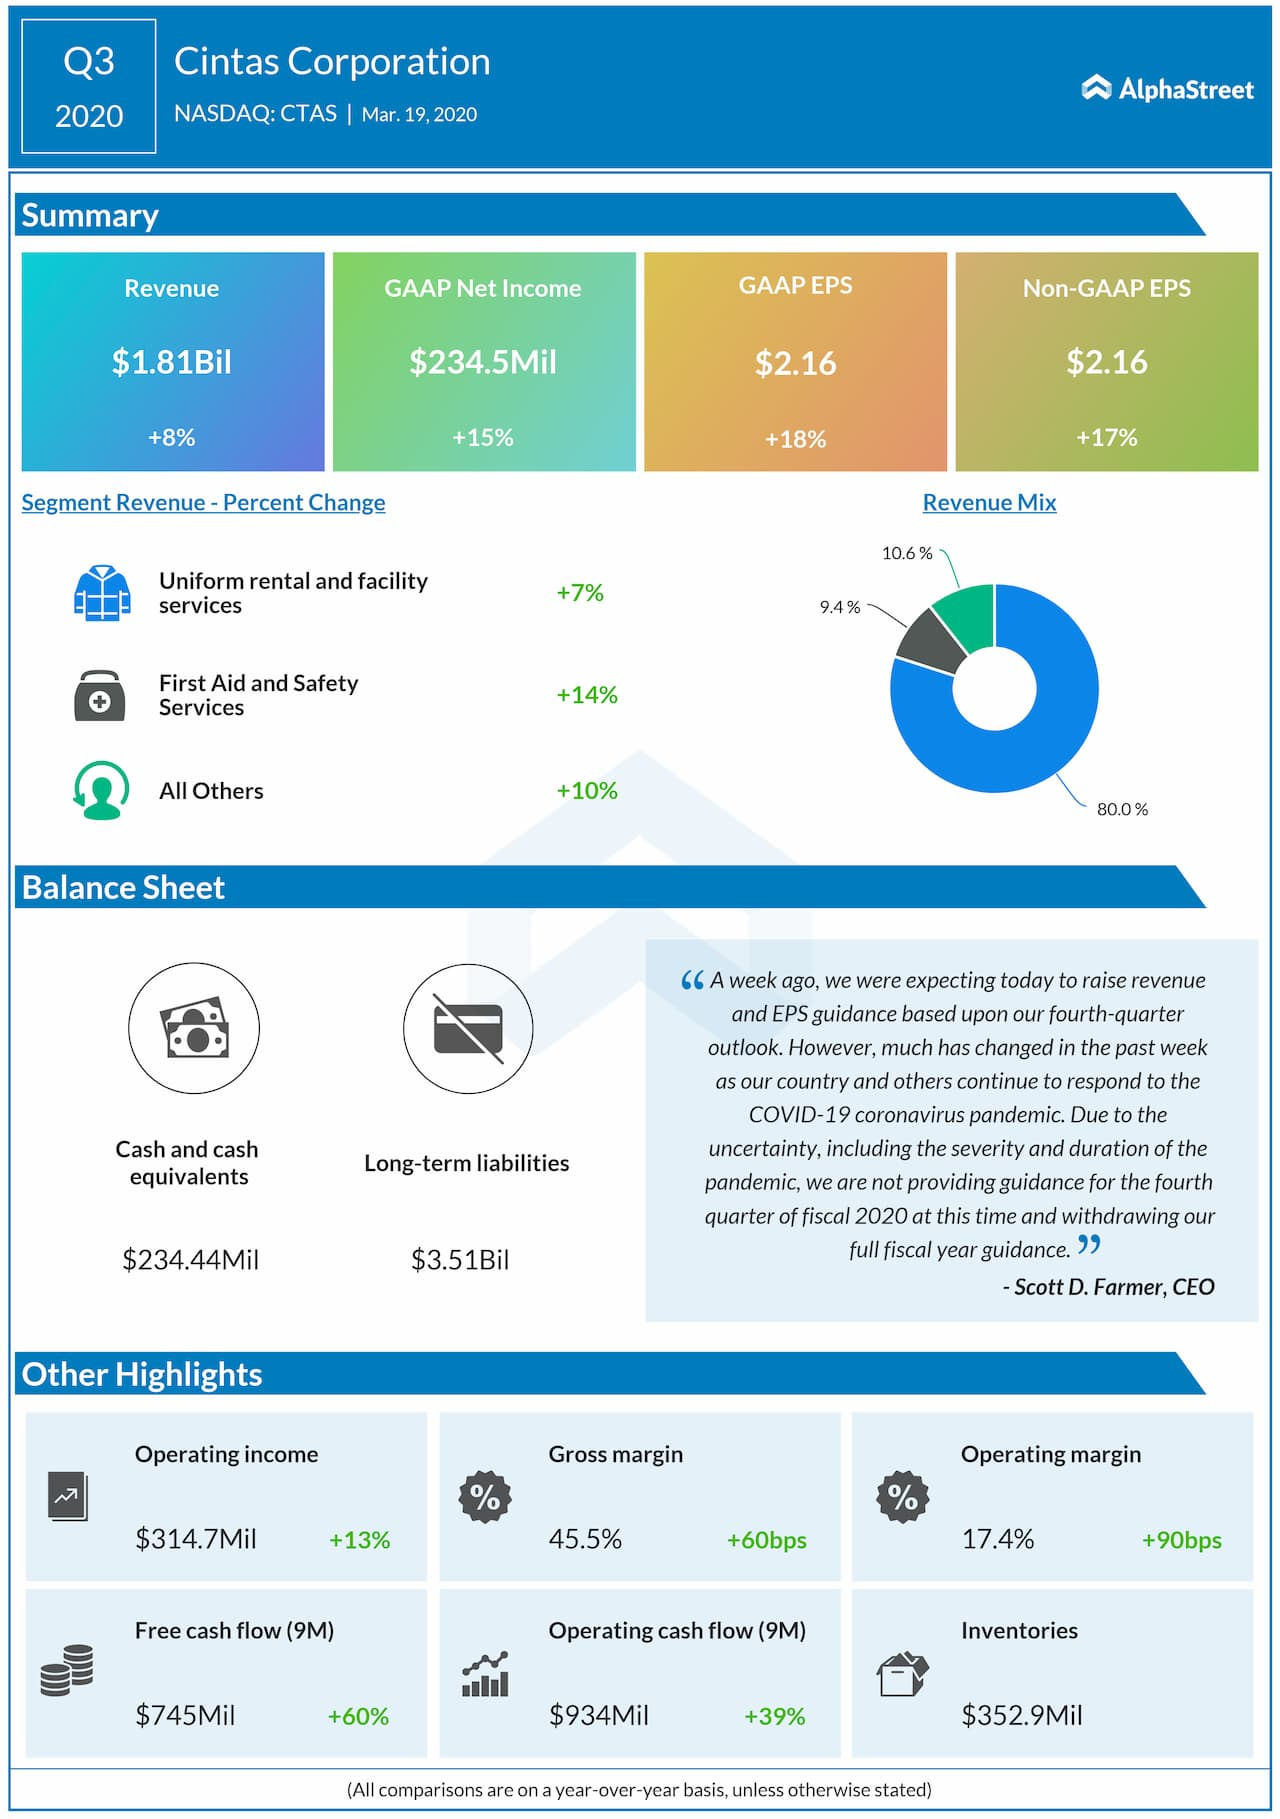 Cintas (CTAS) Q3 2020 earnings snapshot